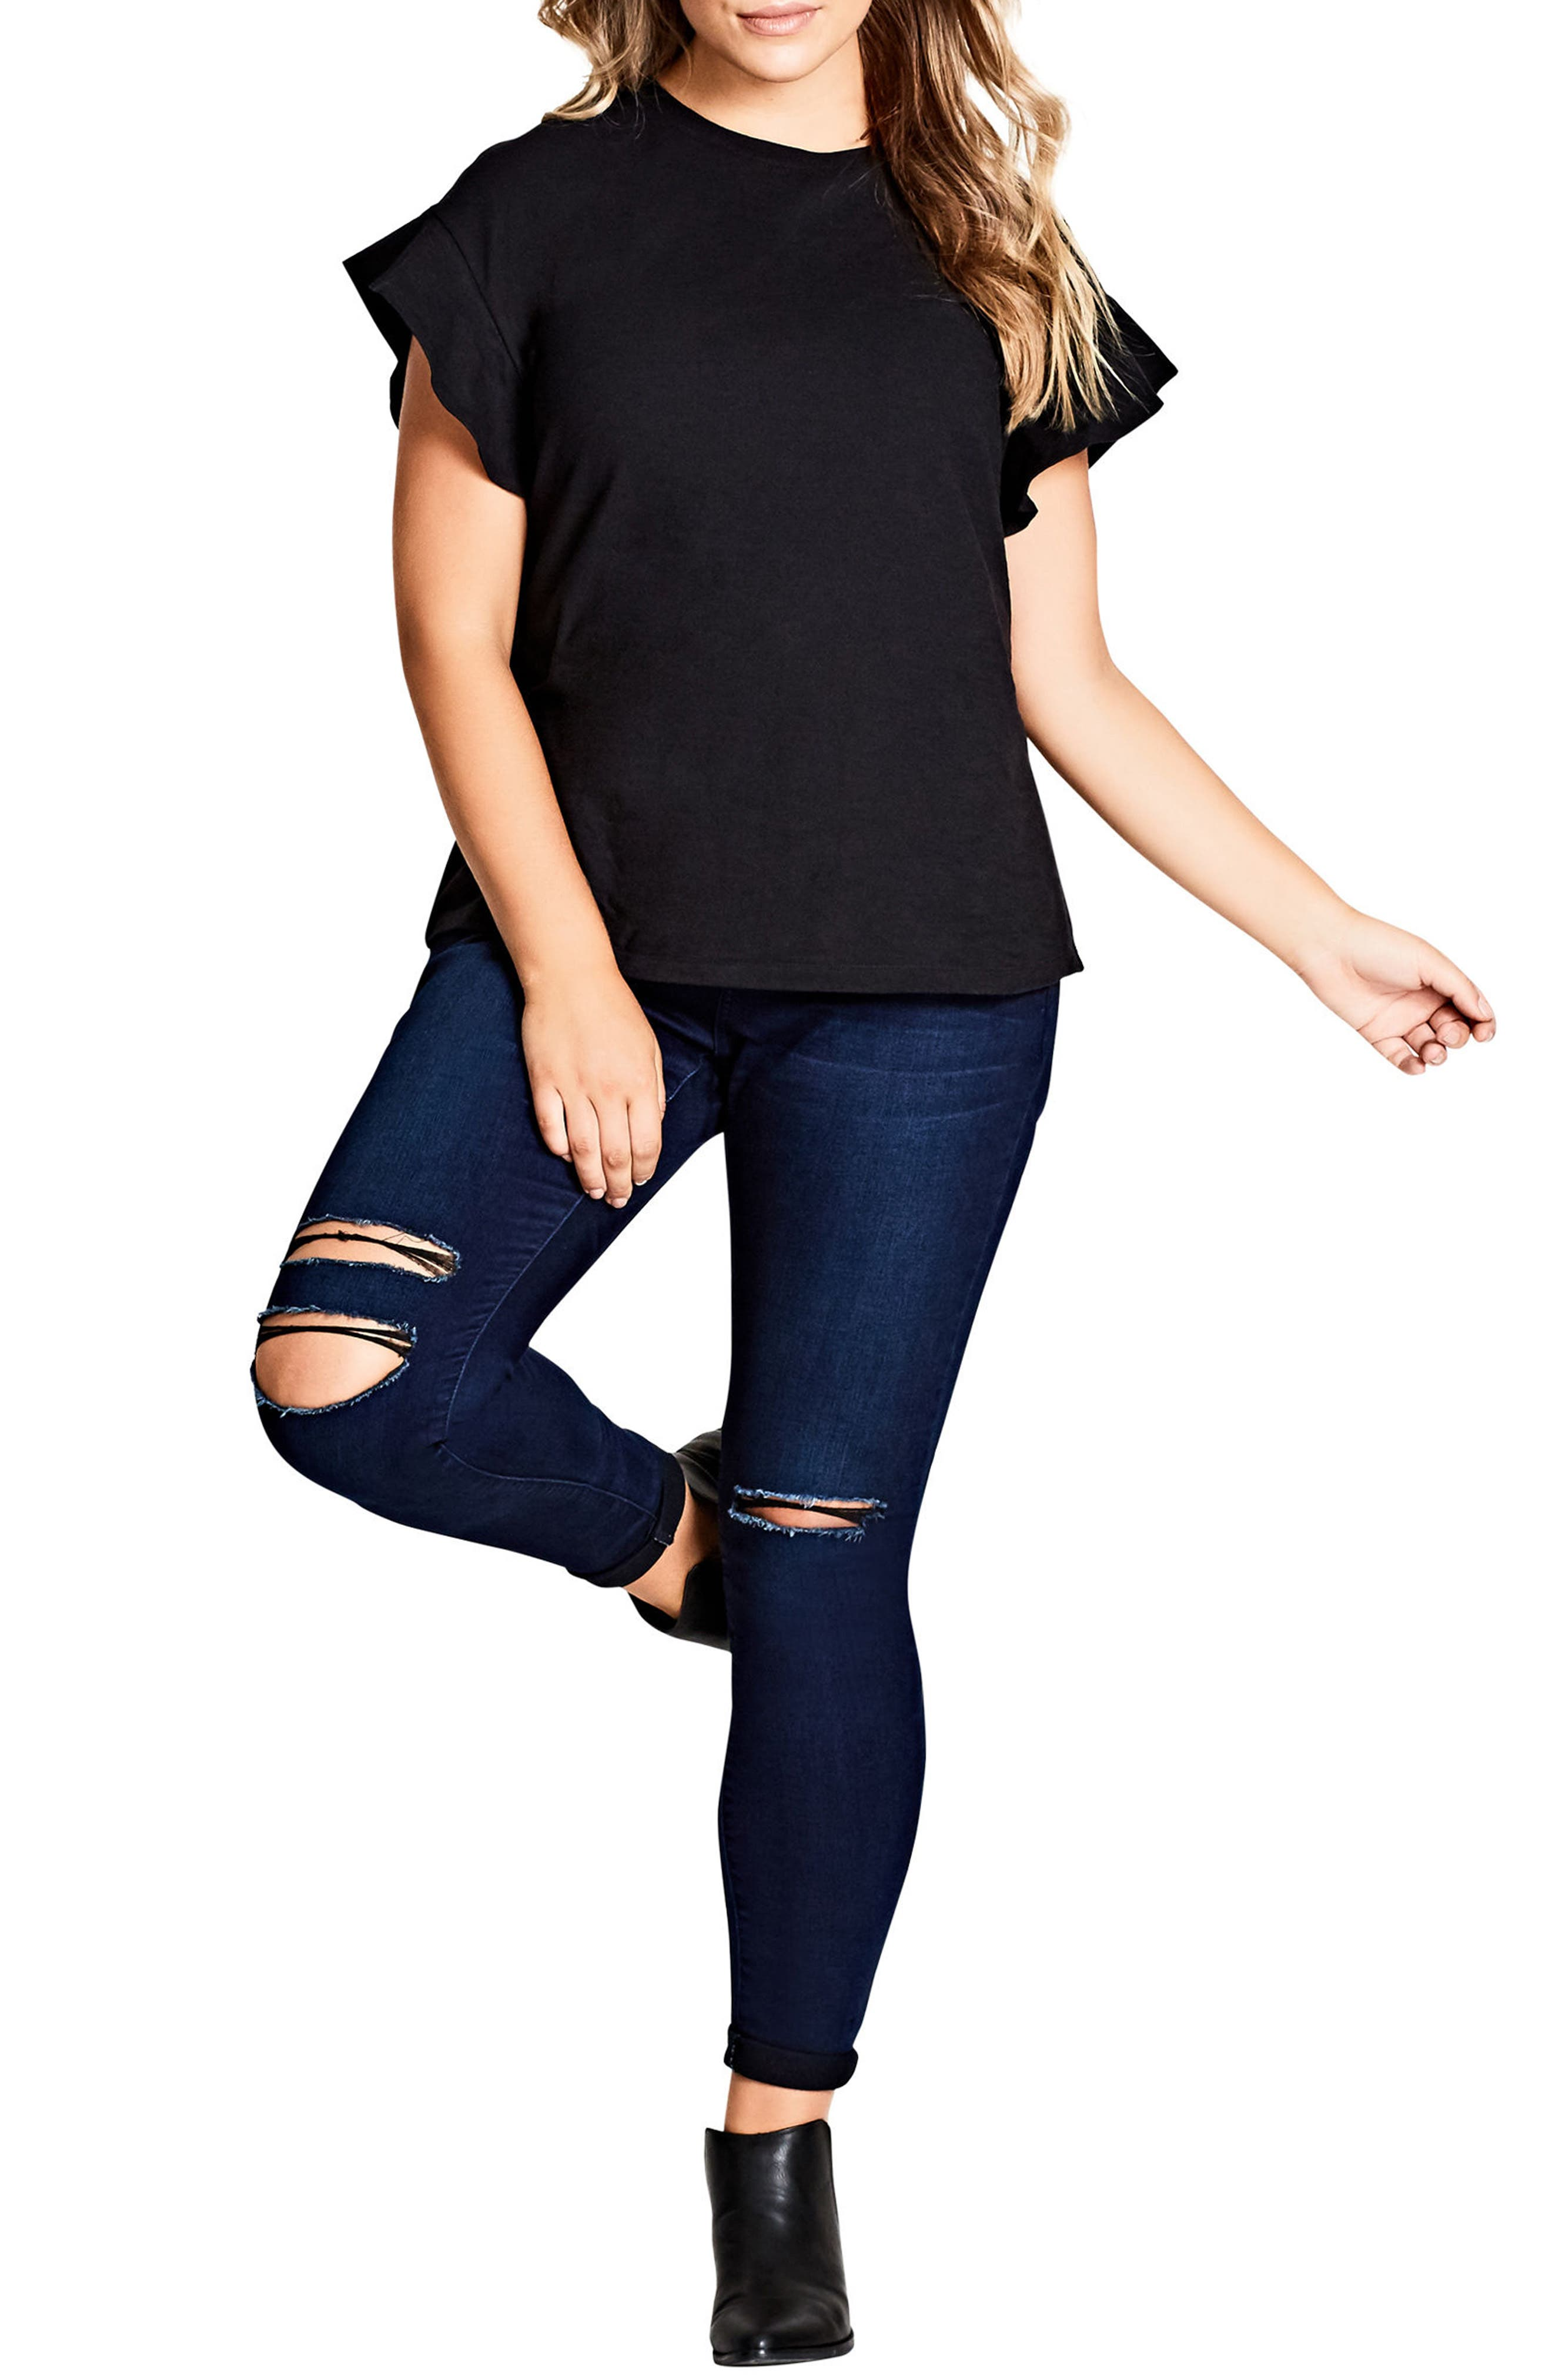 Alternate Image 1 Selected - City Chic Flutter Sleeve Tee (Plus Size)